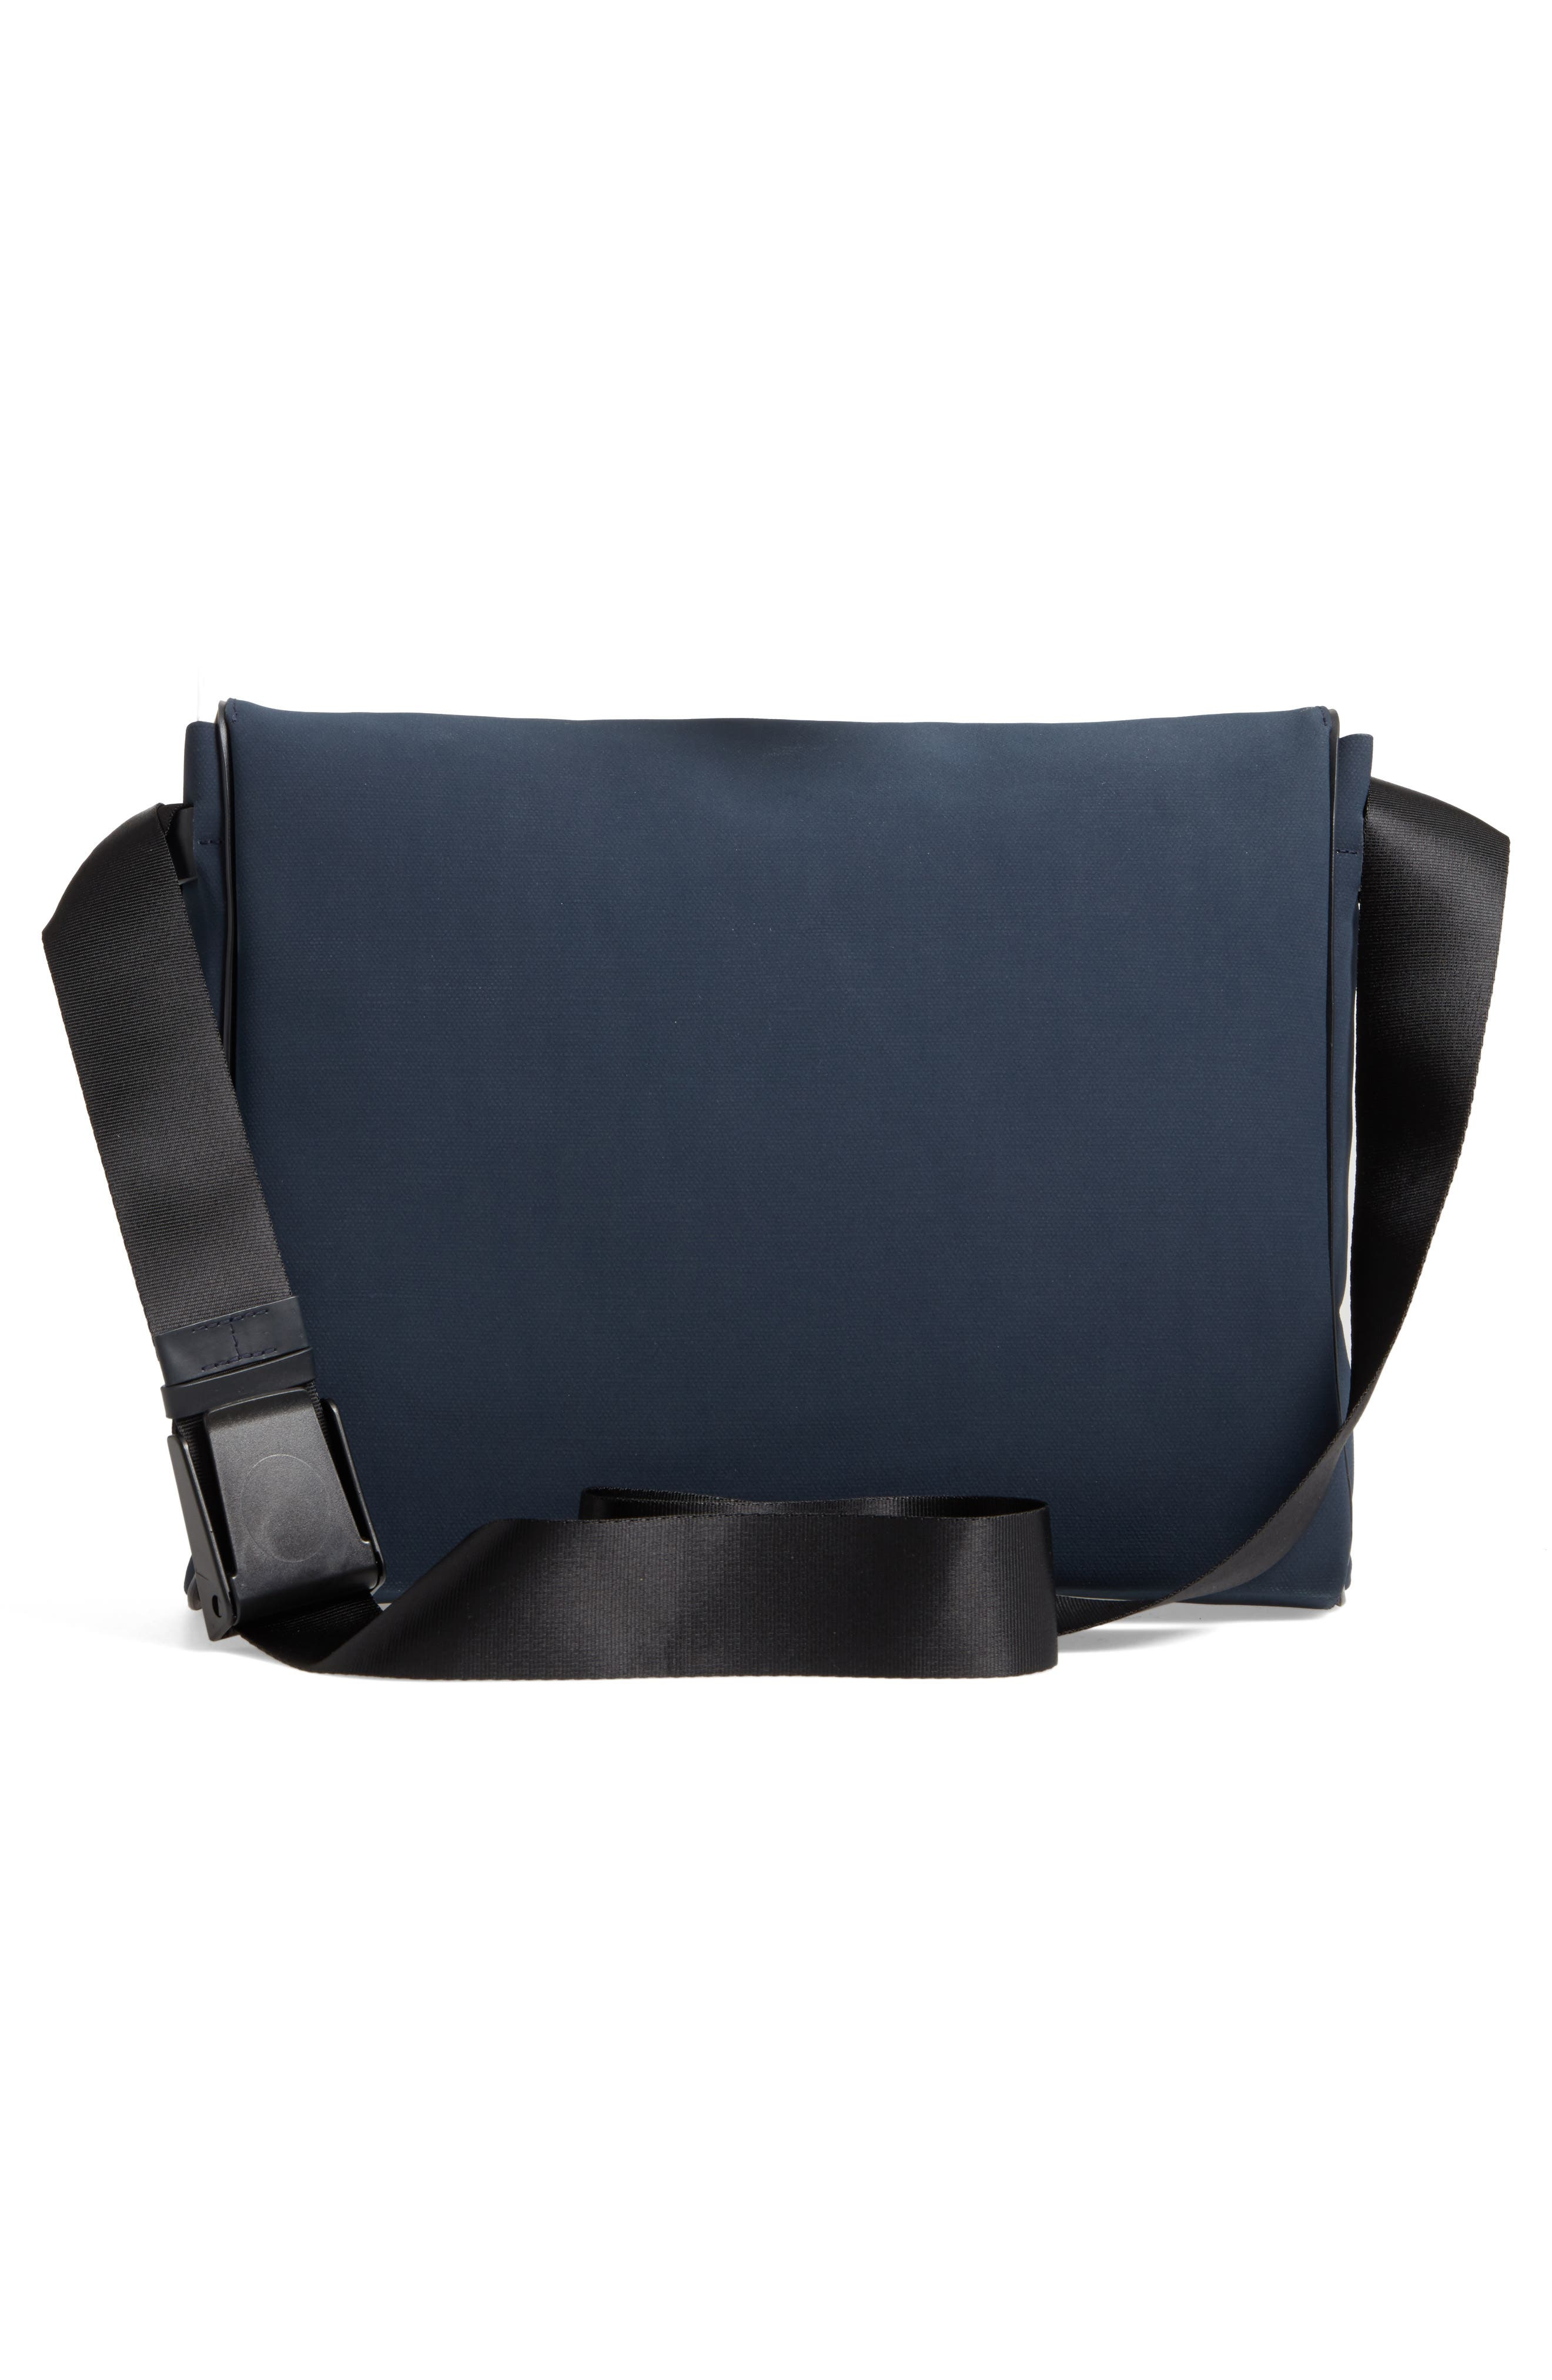 Canvas Messenger Bag,                             Alternate thumbnail 3, color,                             Navy Canvas/ Navy Leather